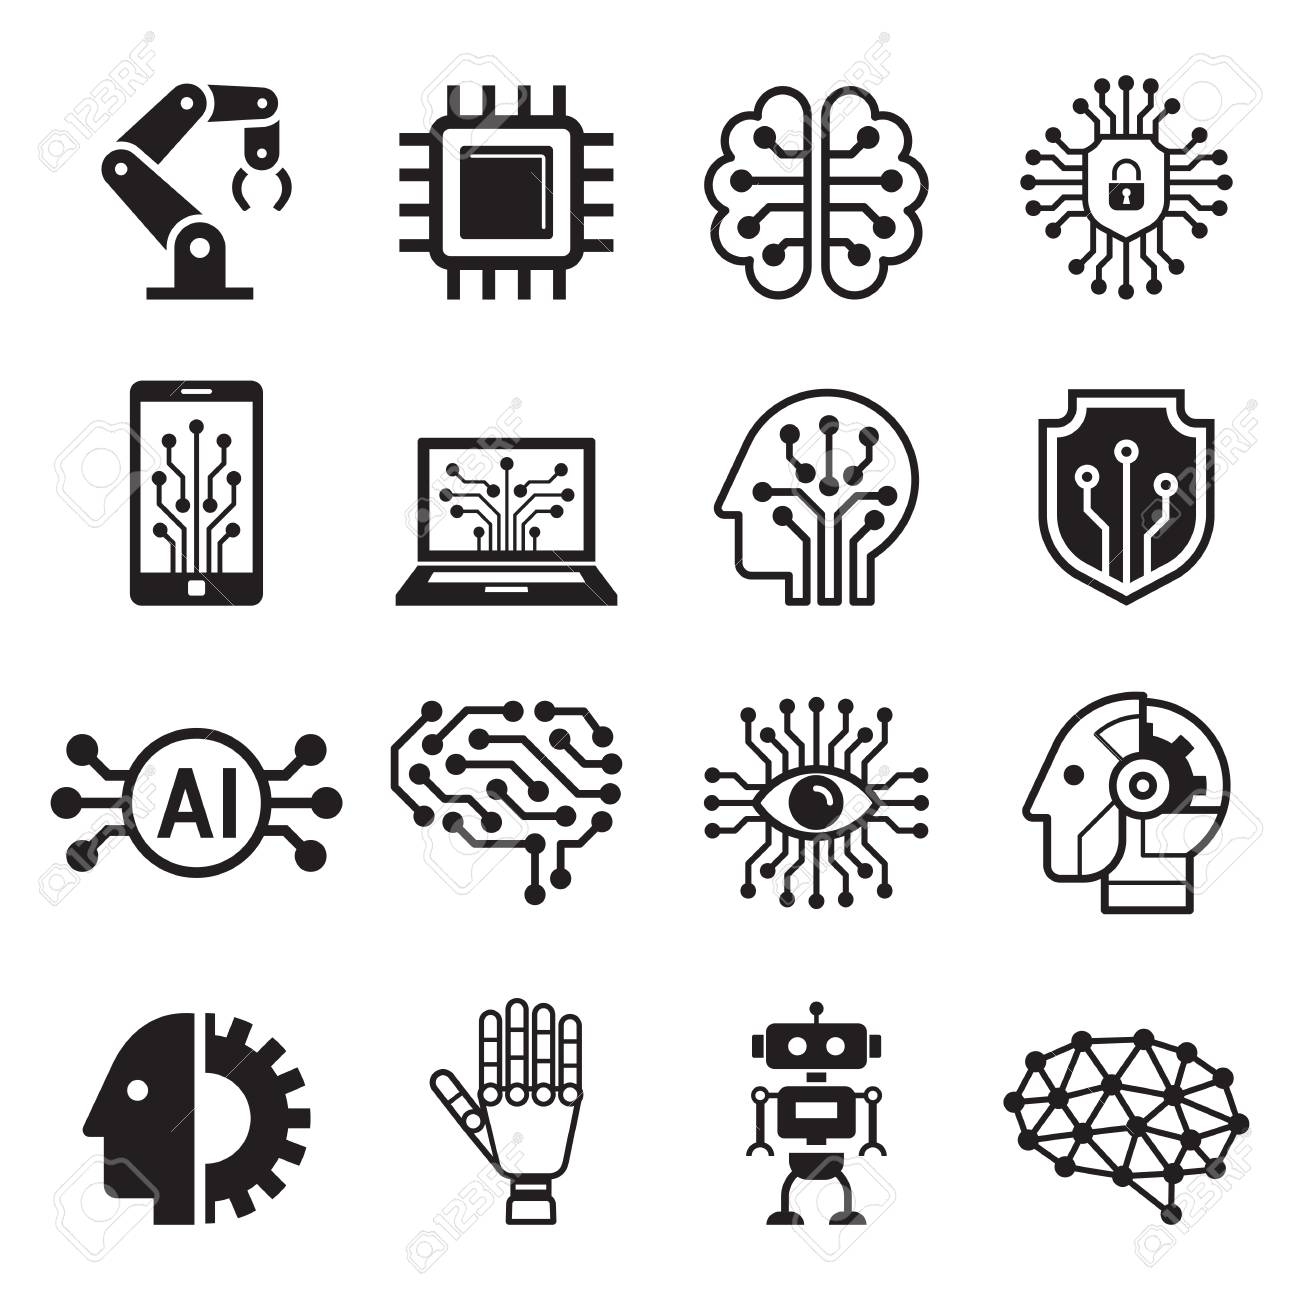 Ai robot artificial intelligence icons. Vector illustration. - 126167554